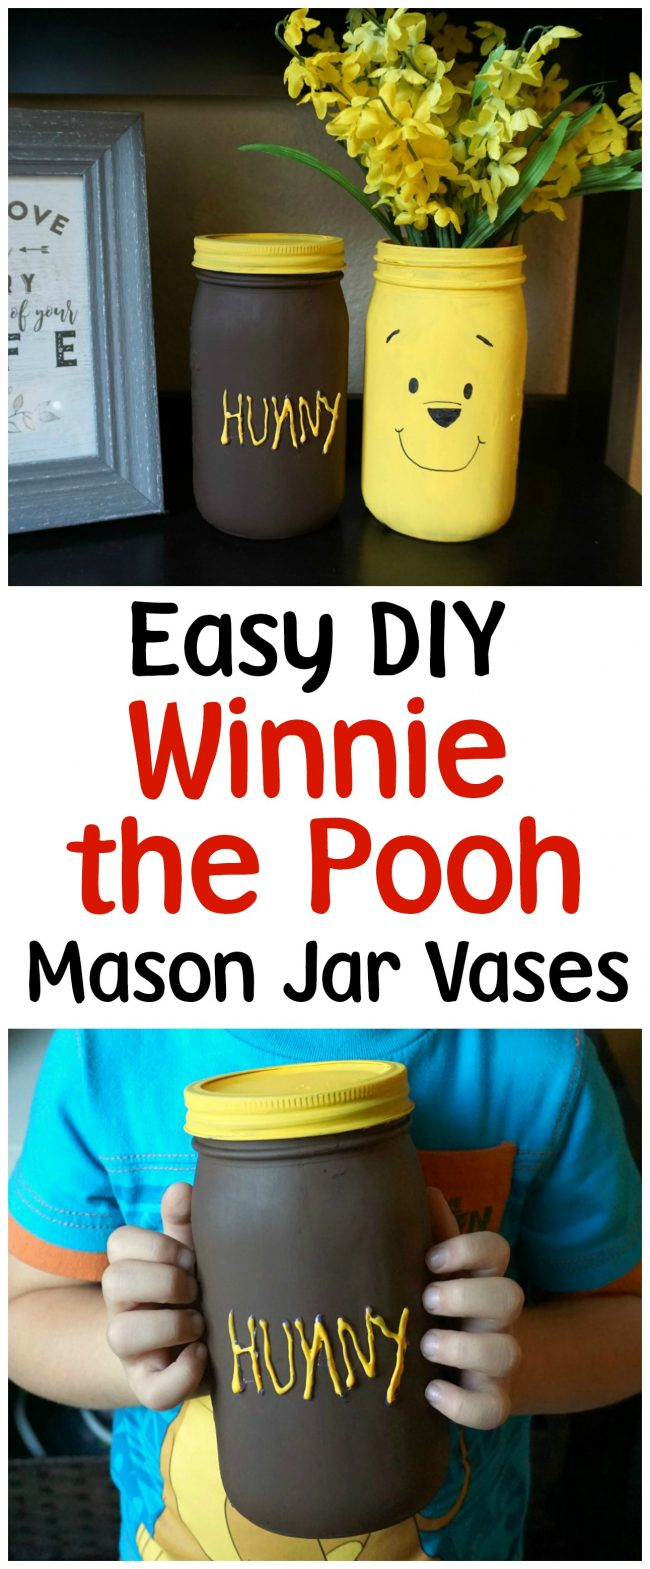 Winnie the Pooh is full of so many adorable characters and memorable quotes- and Disney's Christopher Robin is sure to be the same! I can't wait to visit the Hundred Acre Wood again and to celebrate, I made these adorable painted DIY mason jar vases featuring Winnie the Pooh and his Hunny Pot. You could use these vases for flowers, as a centerpiece for a baby shower, or as storage in the nursery for baby keepsakes! The vases can even be repurposed for older kids as bathroom storage!